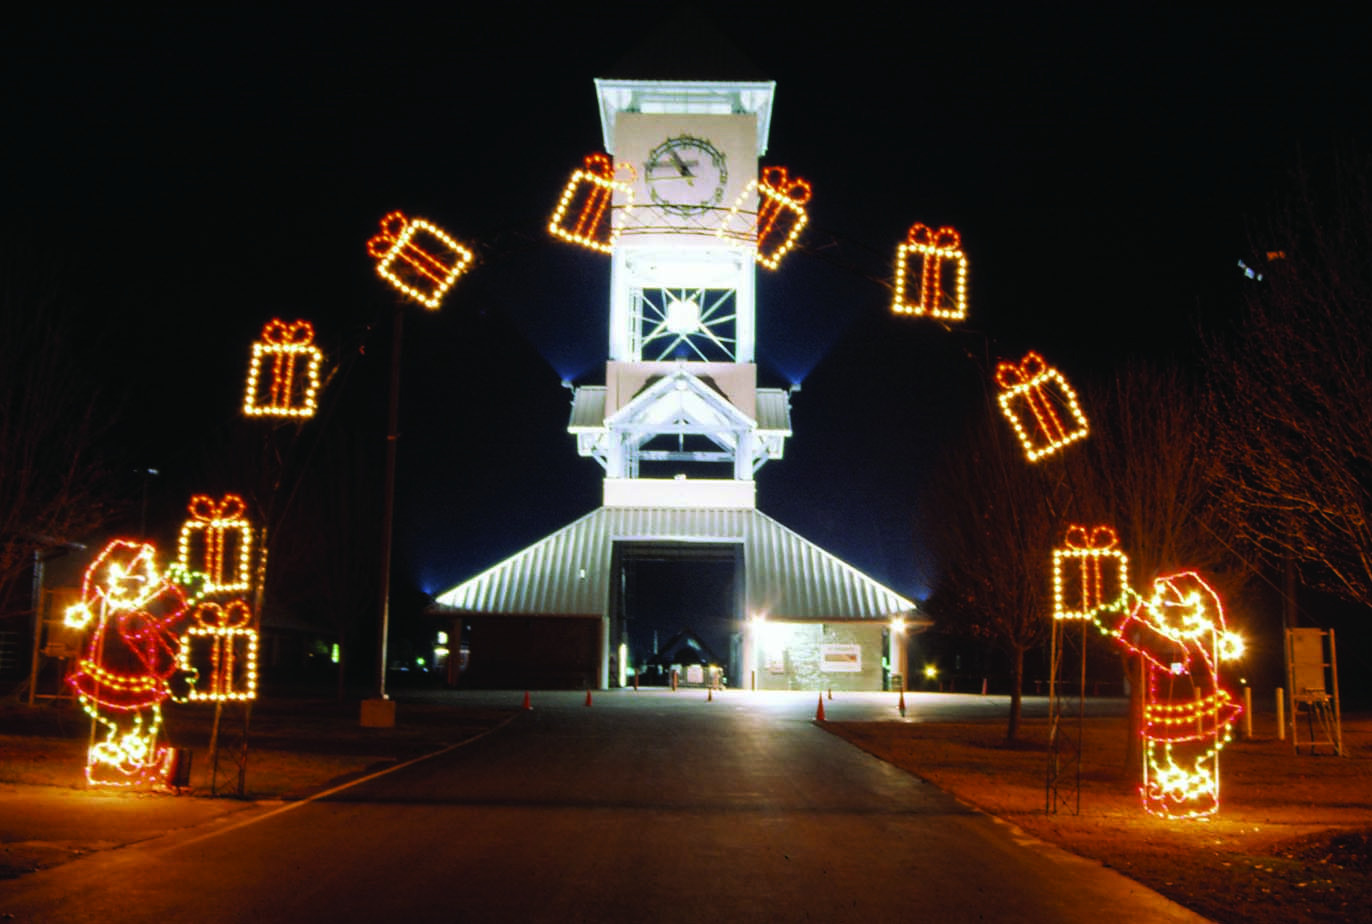 DIY Animated Christmas Decorations  mercial Lighted Arches for Drive Thru Parks and City